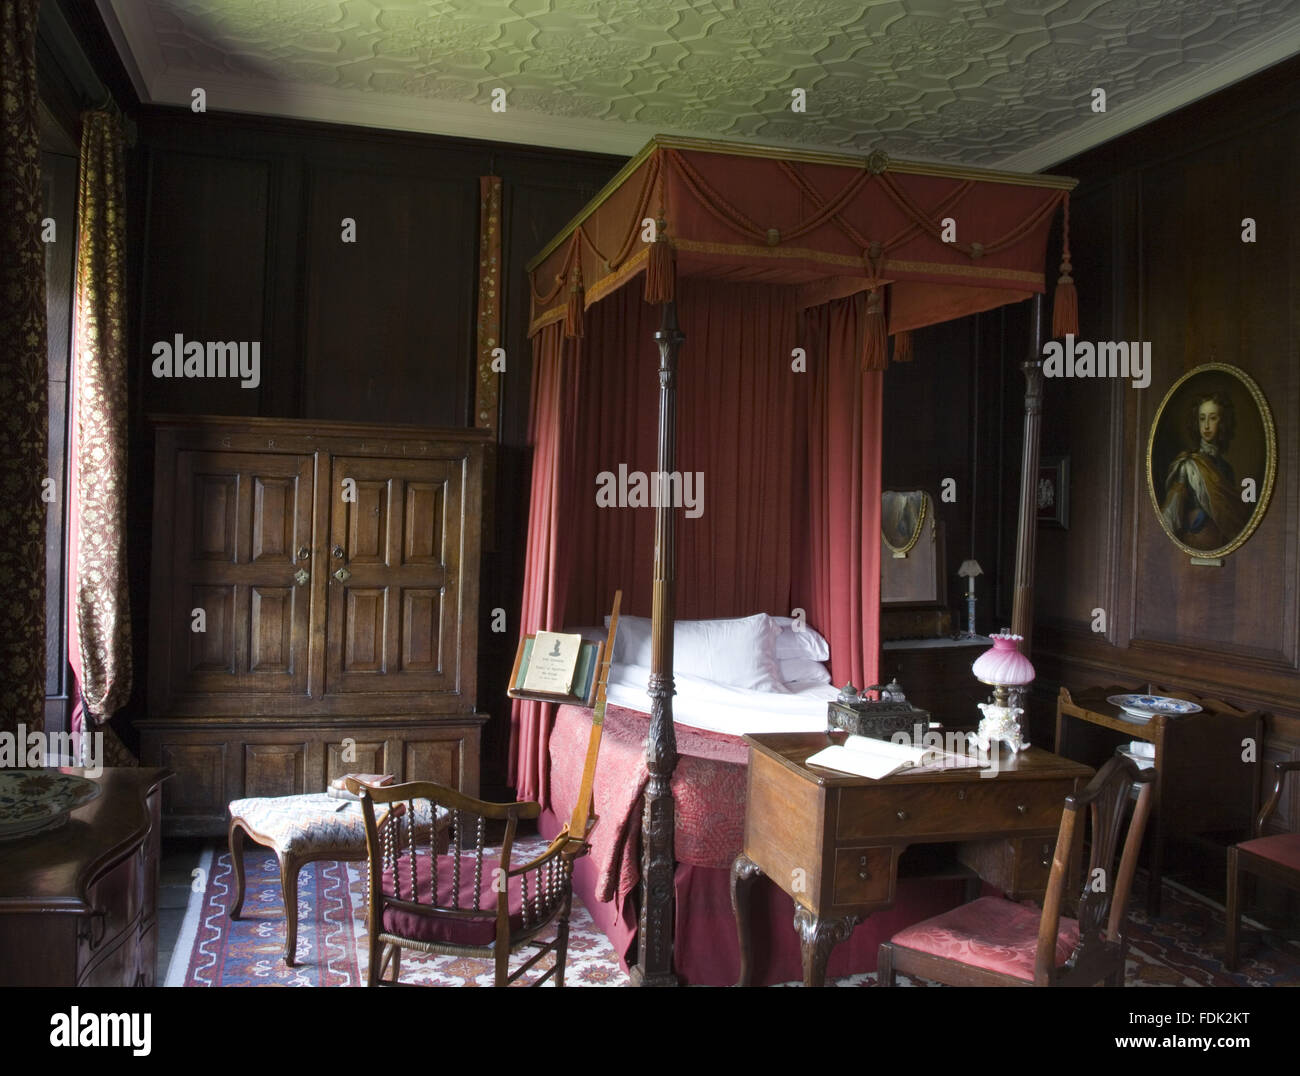 Period Bedroom Furniture The Red Bedroom At Erddig Wrexham Wales The Mahogany Four